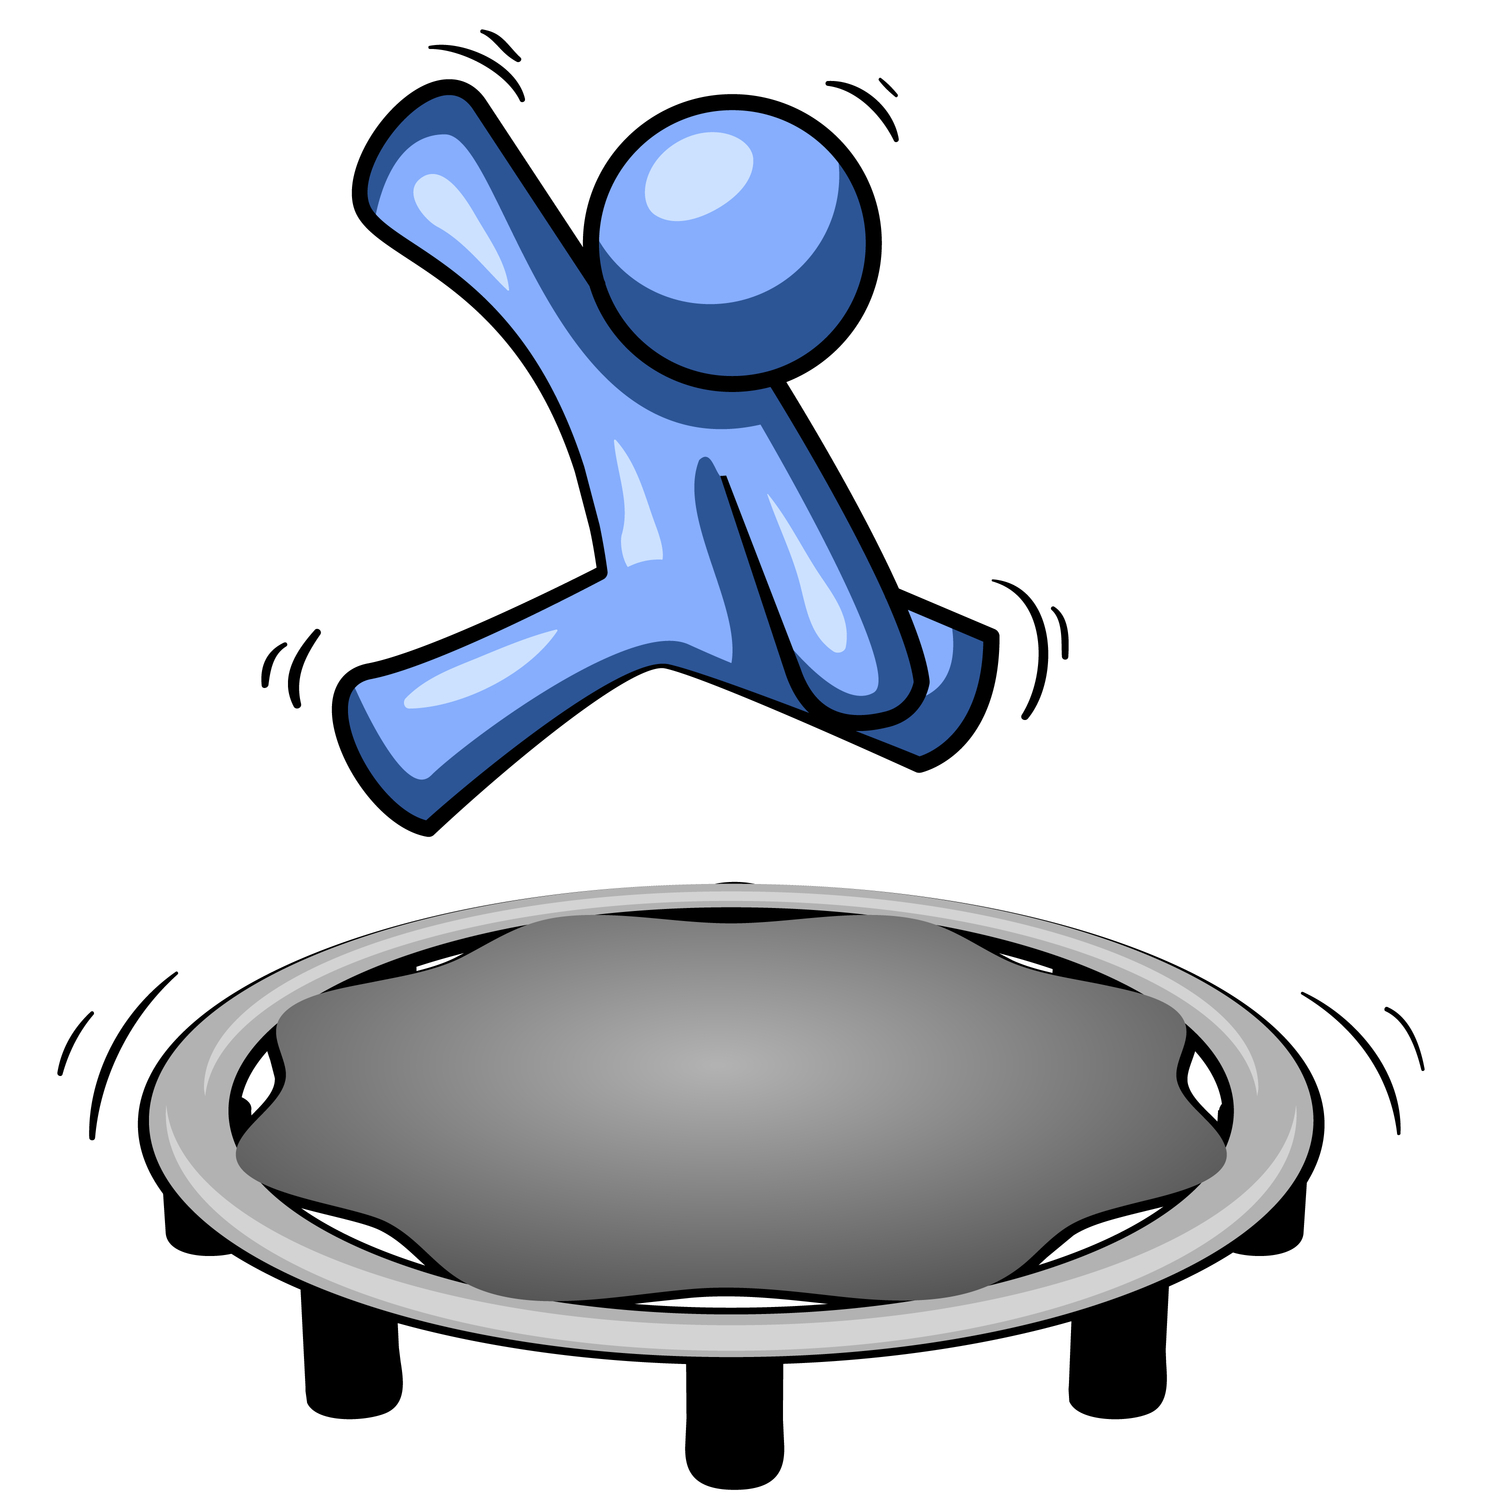 on a Trampoline Clipart.